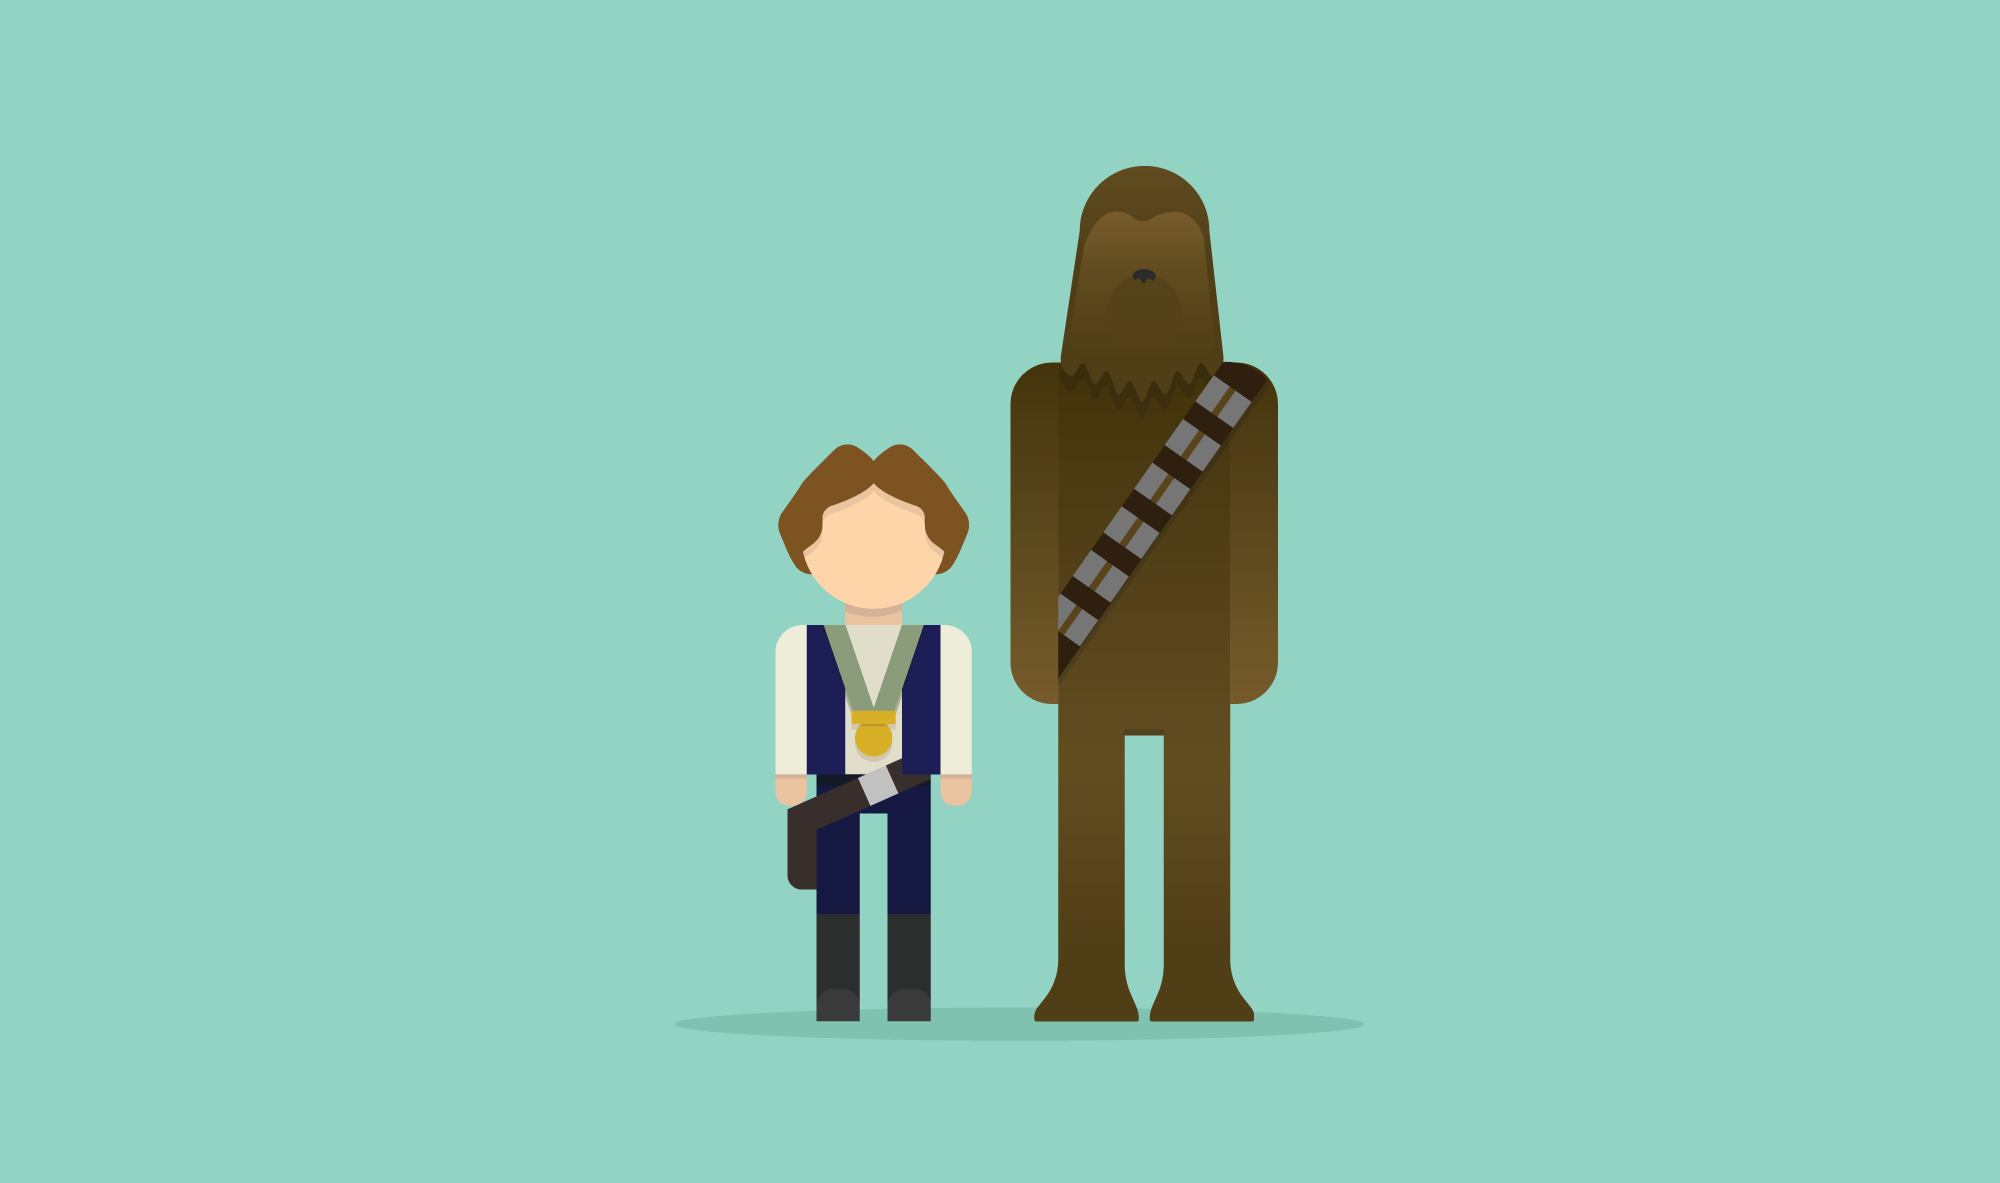 Recognition, Han Solo, and Saving the Galaxy